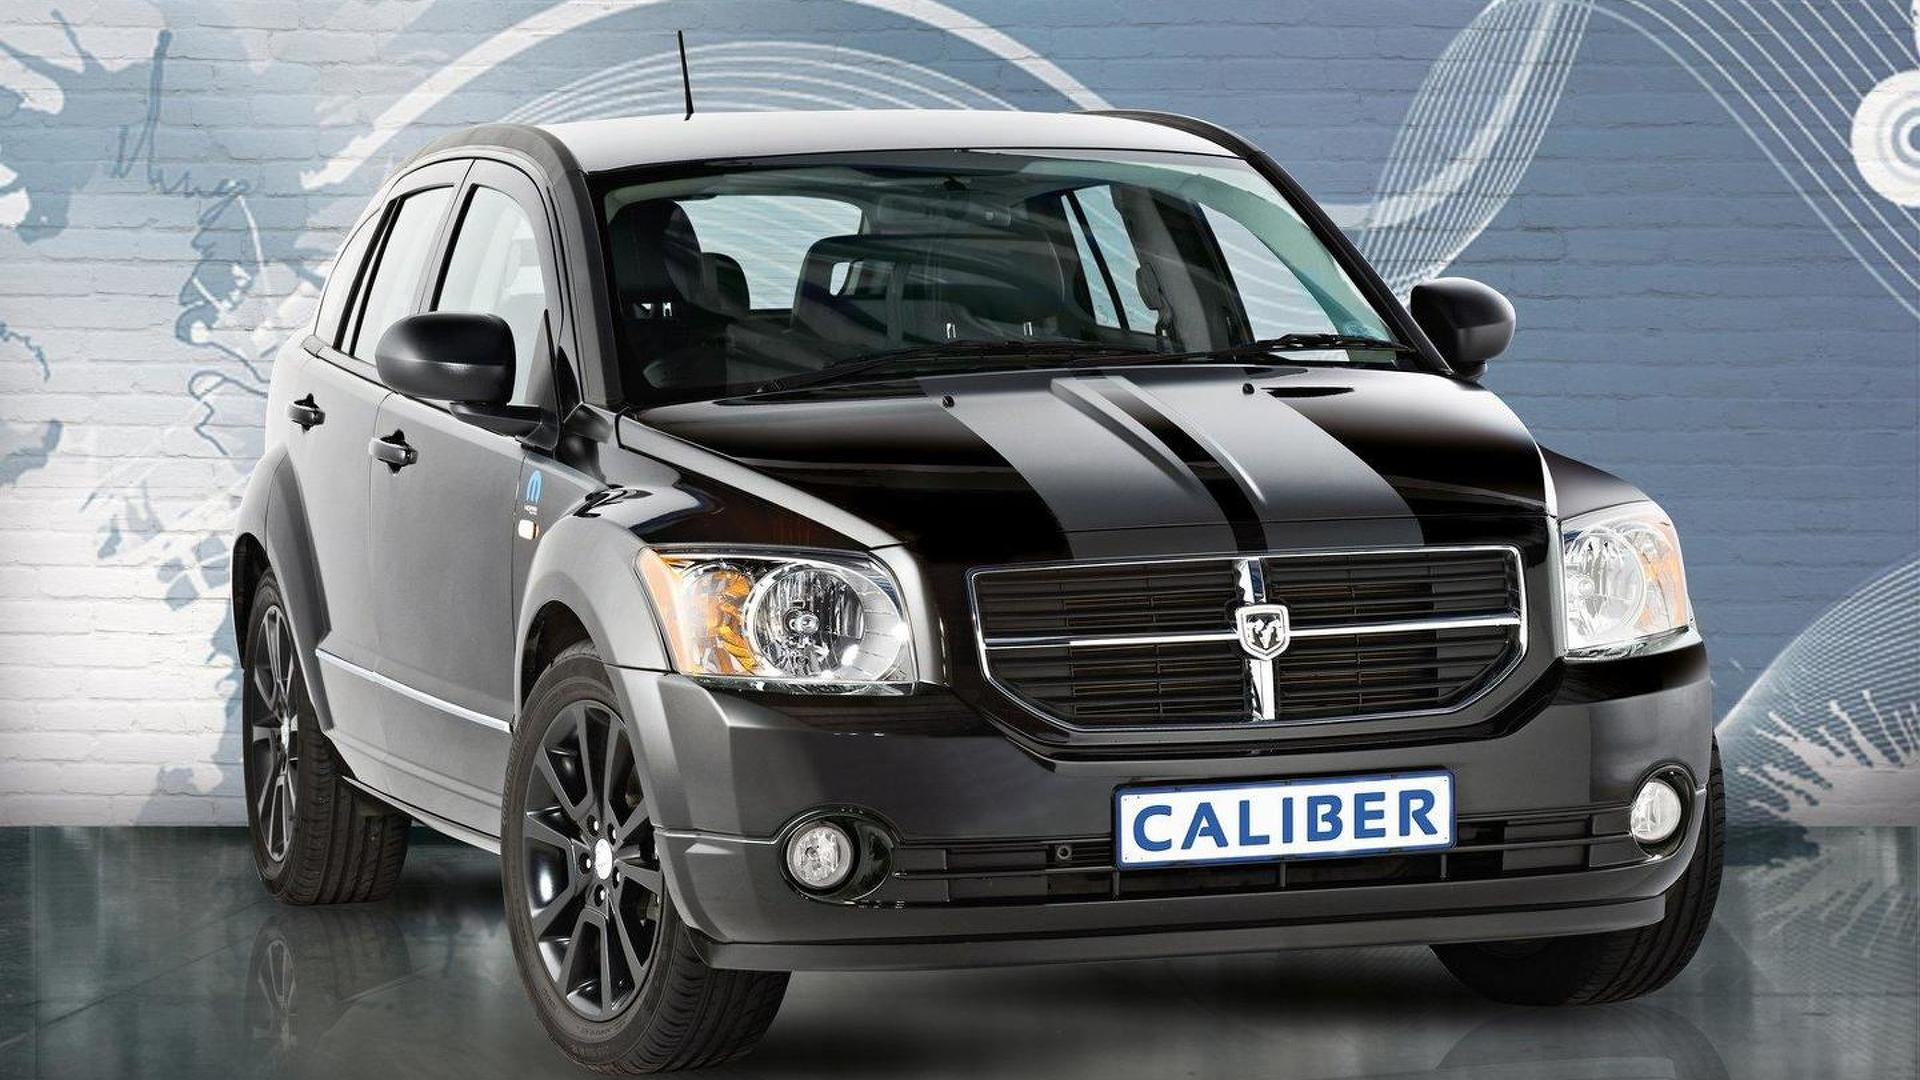 2011-240137-dodge-caliber-mopar-edition-